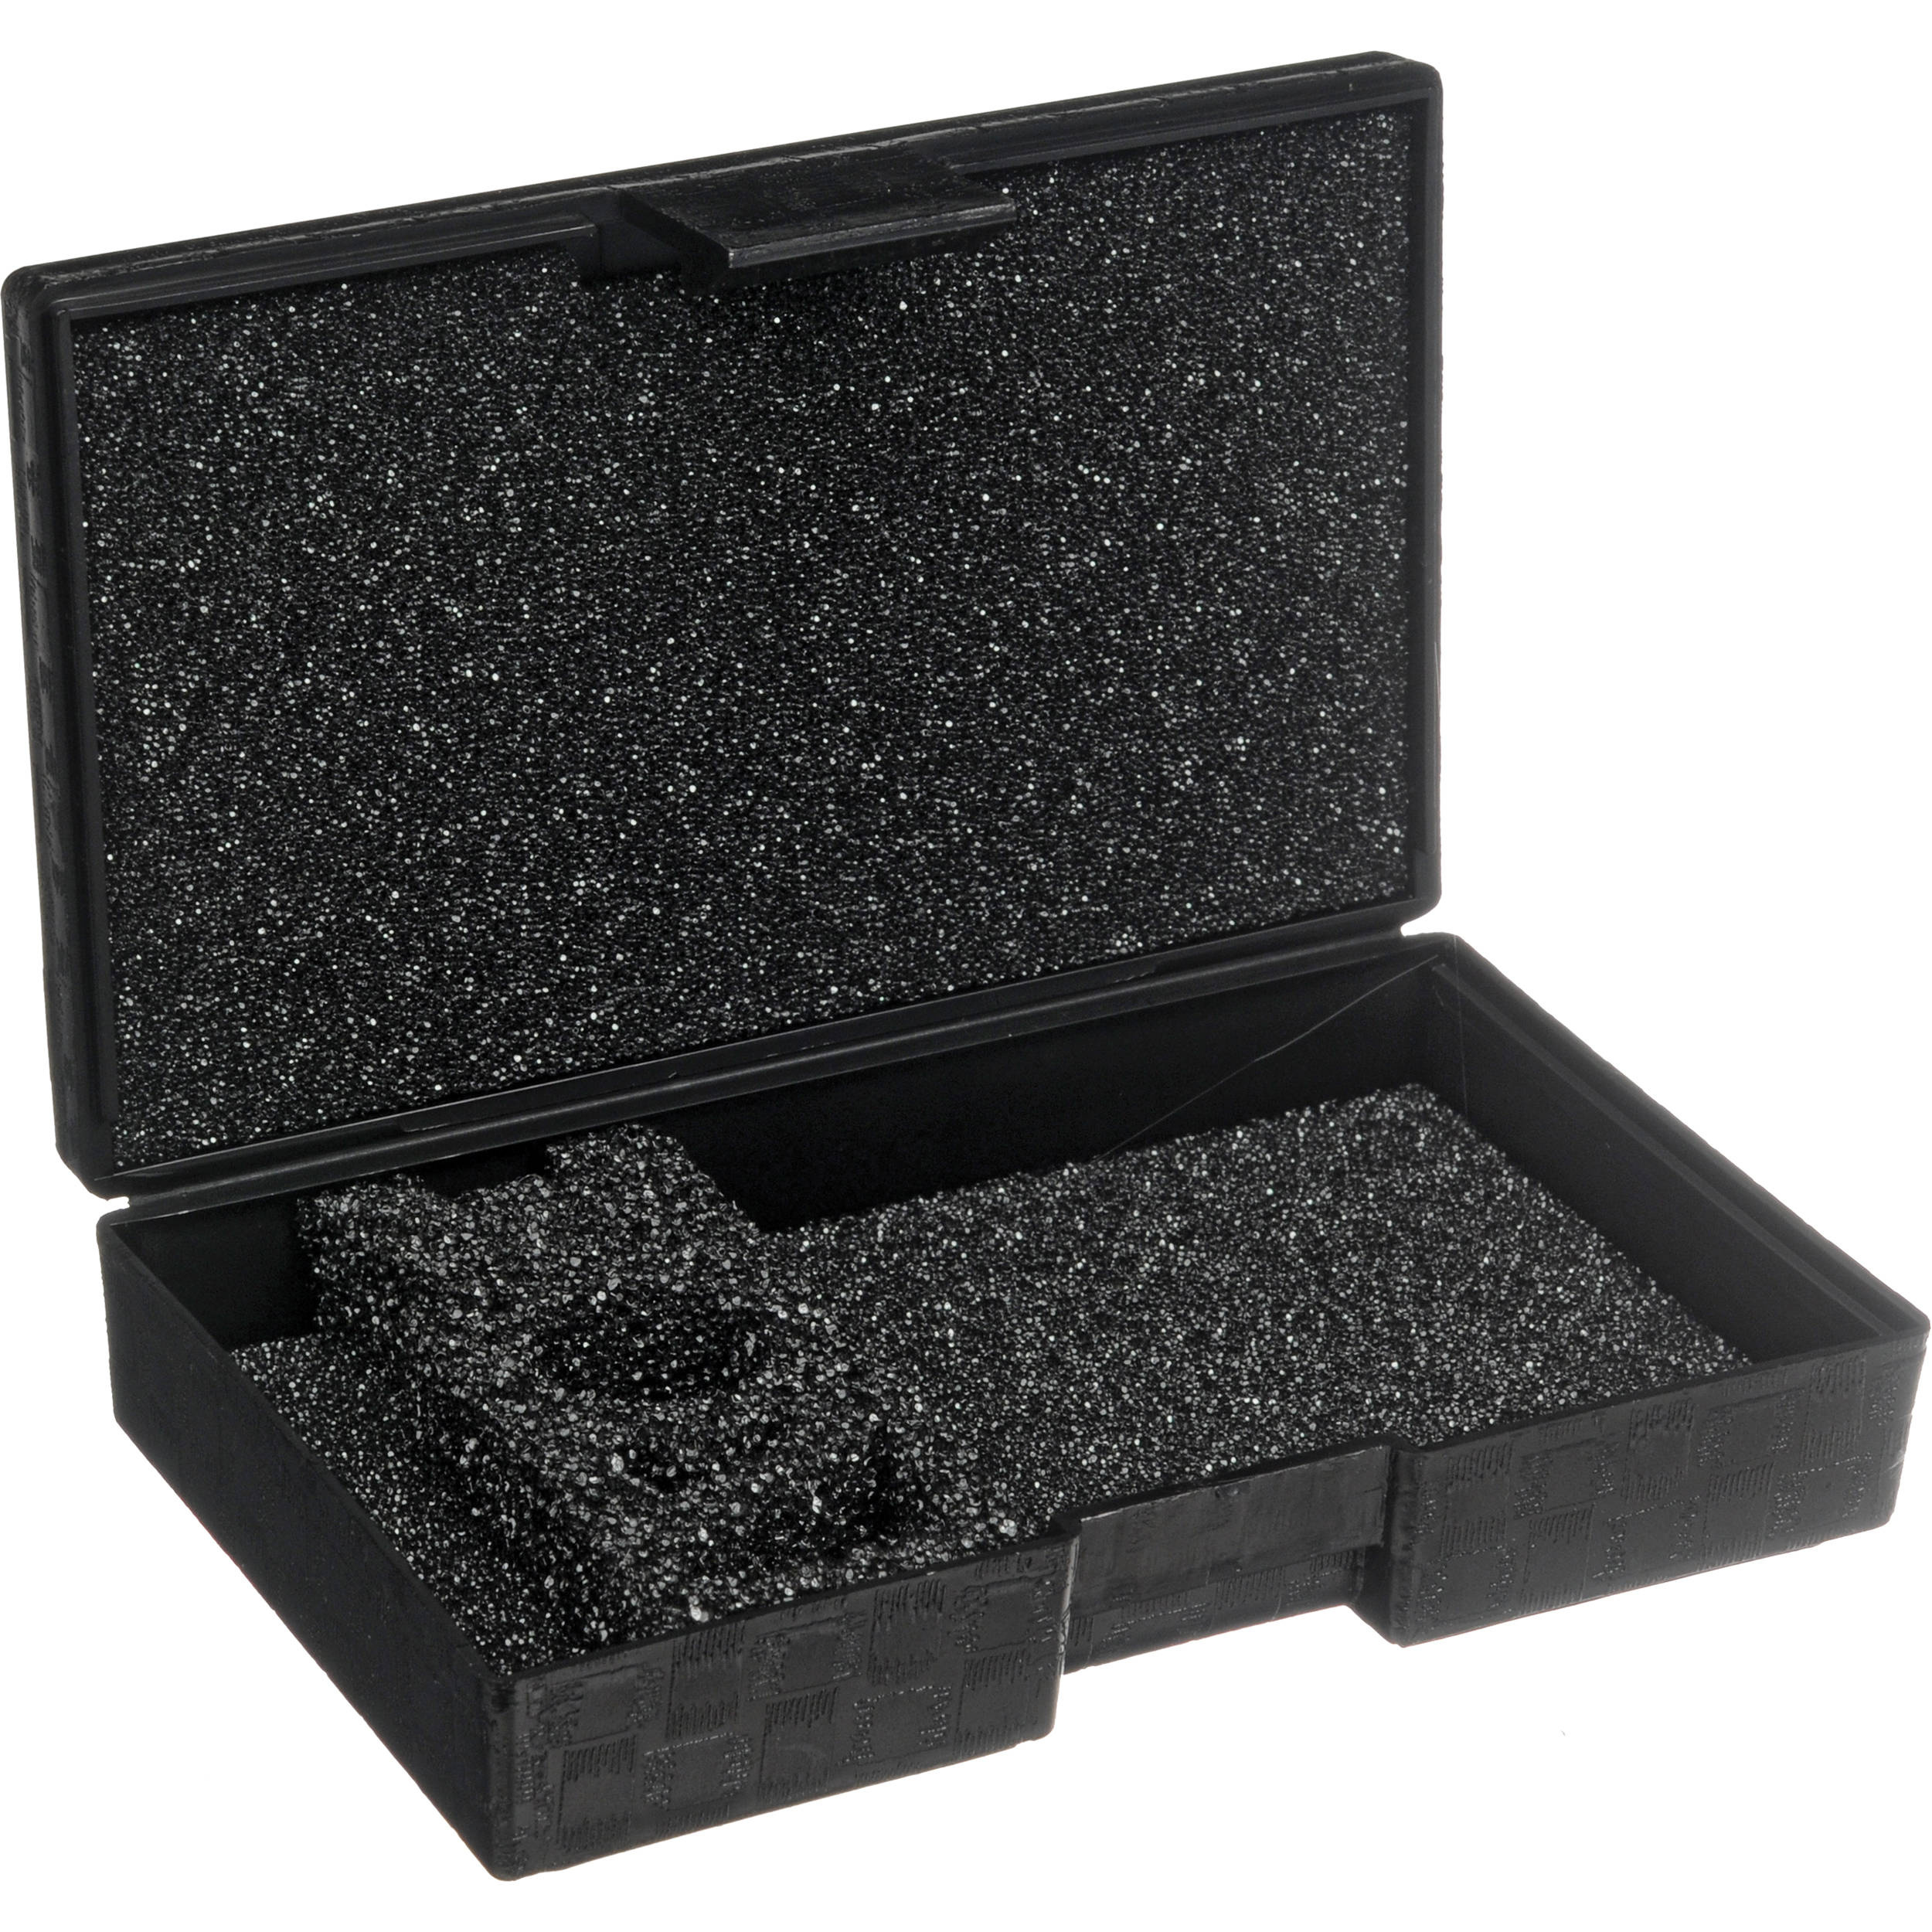 Tram BCC Hard Carrying Case - for Tram TR-50 Black Lavalier Microphone (Replacement)